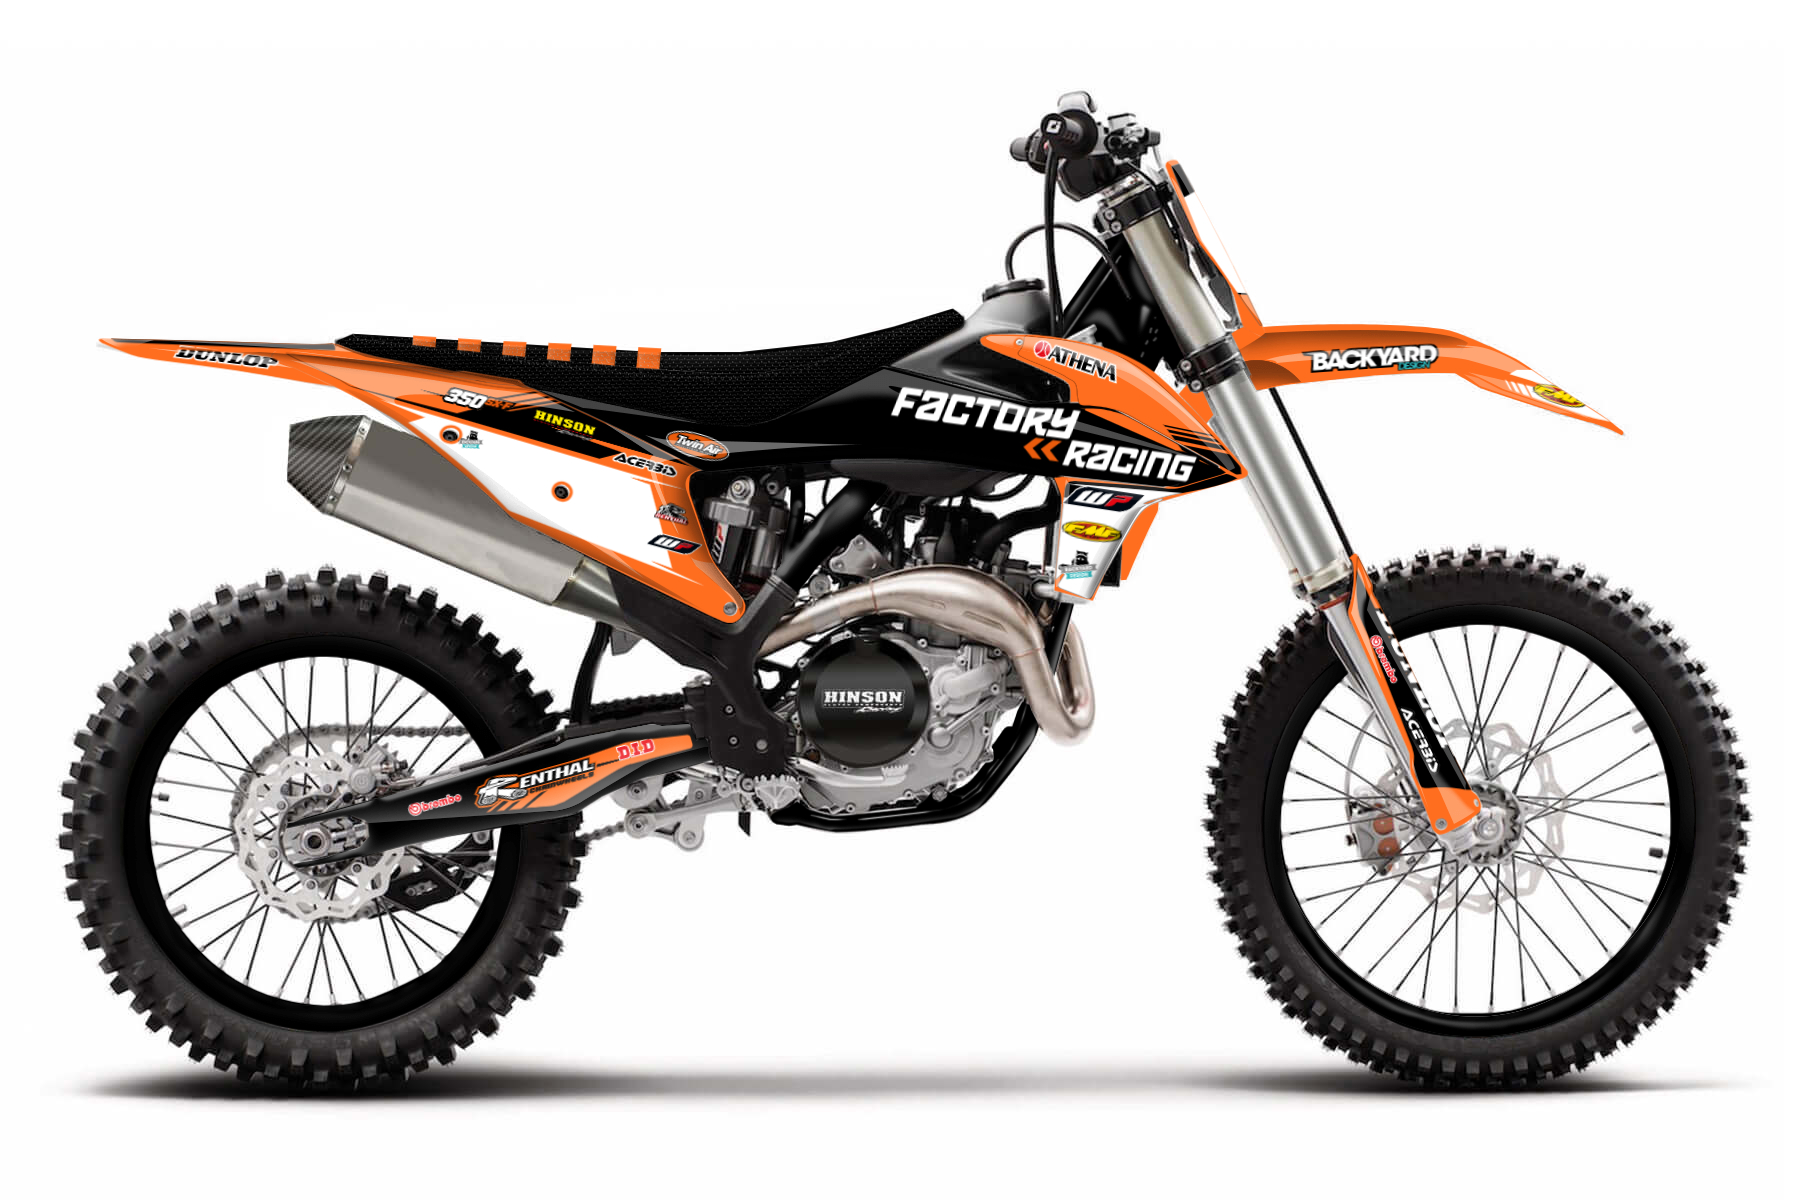 KTM SX-F 350 Graphic Kits  Unbeaten power and the ability to effectively transfer power to the ground mix with a good handling. The KTM SX-F 350 is made to be taken out an the off road track.